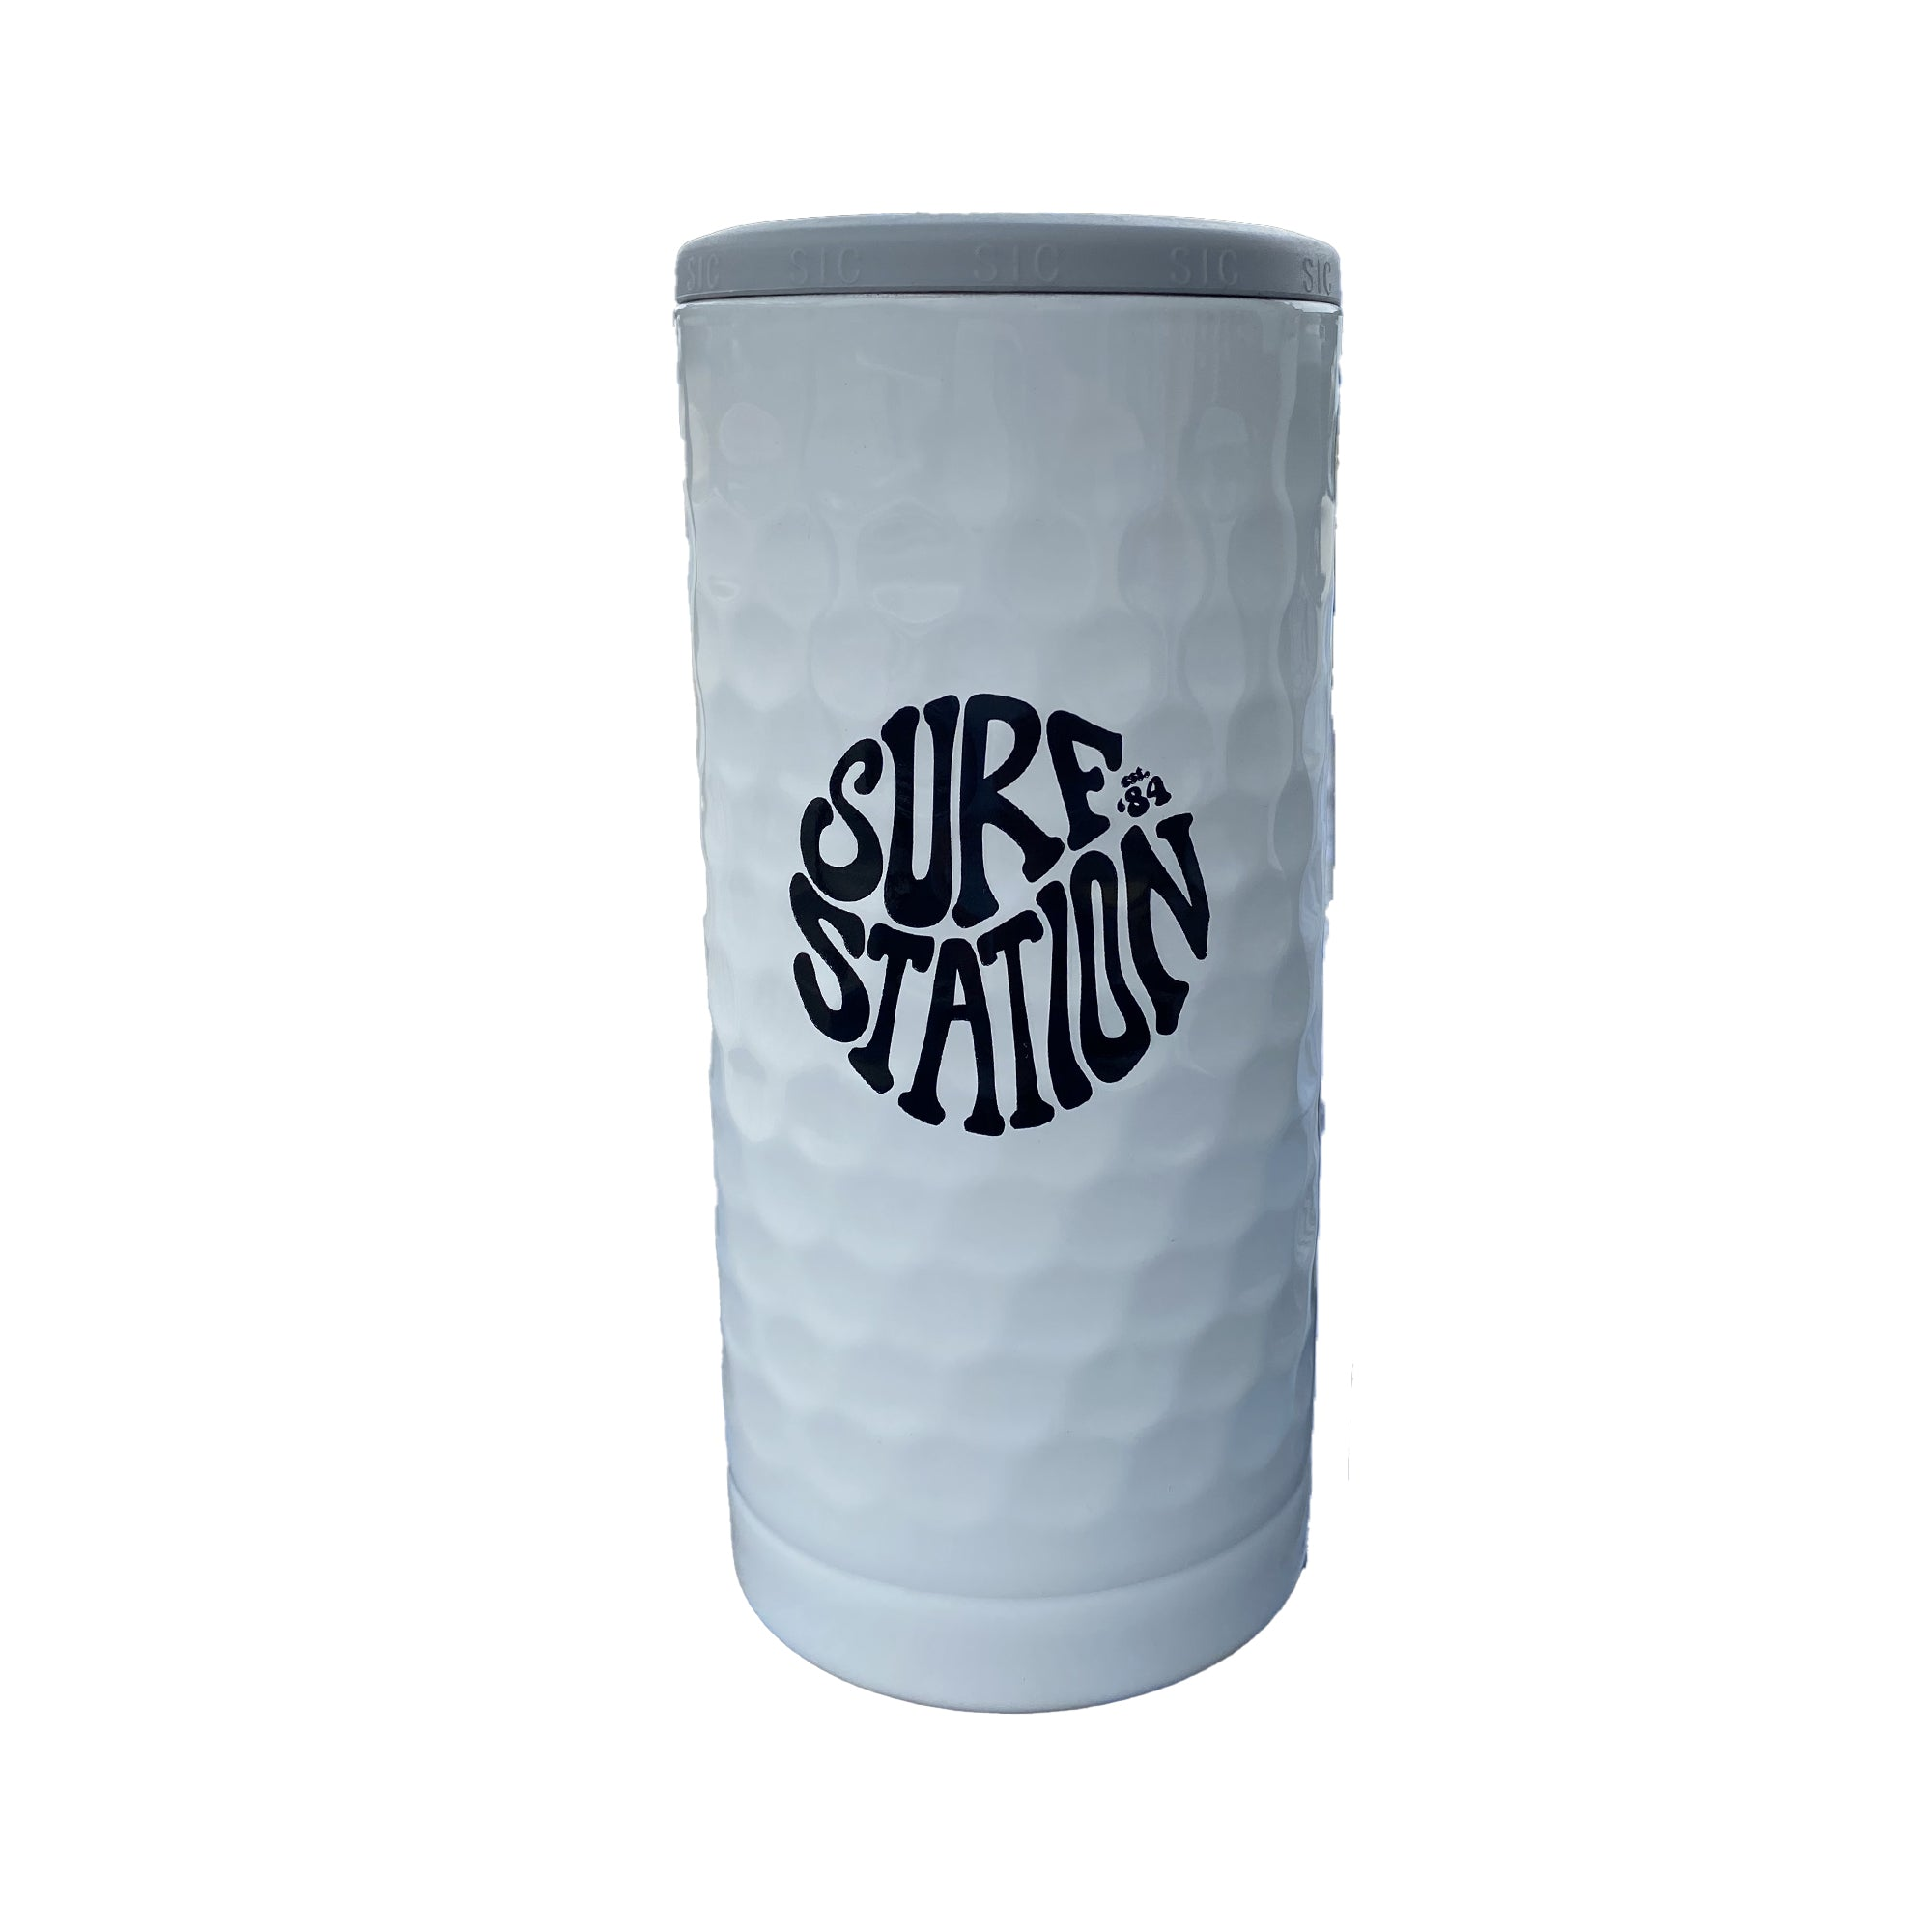 Surf Station SIC Slim Can Koozie - Dimpled Golf